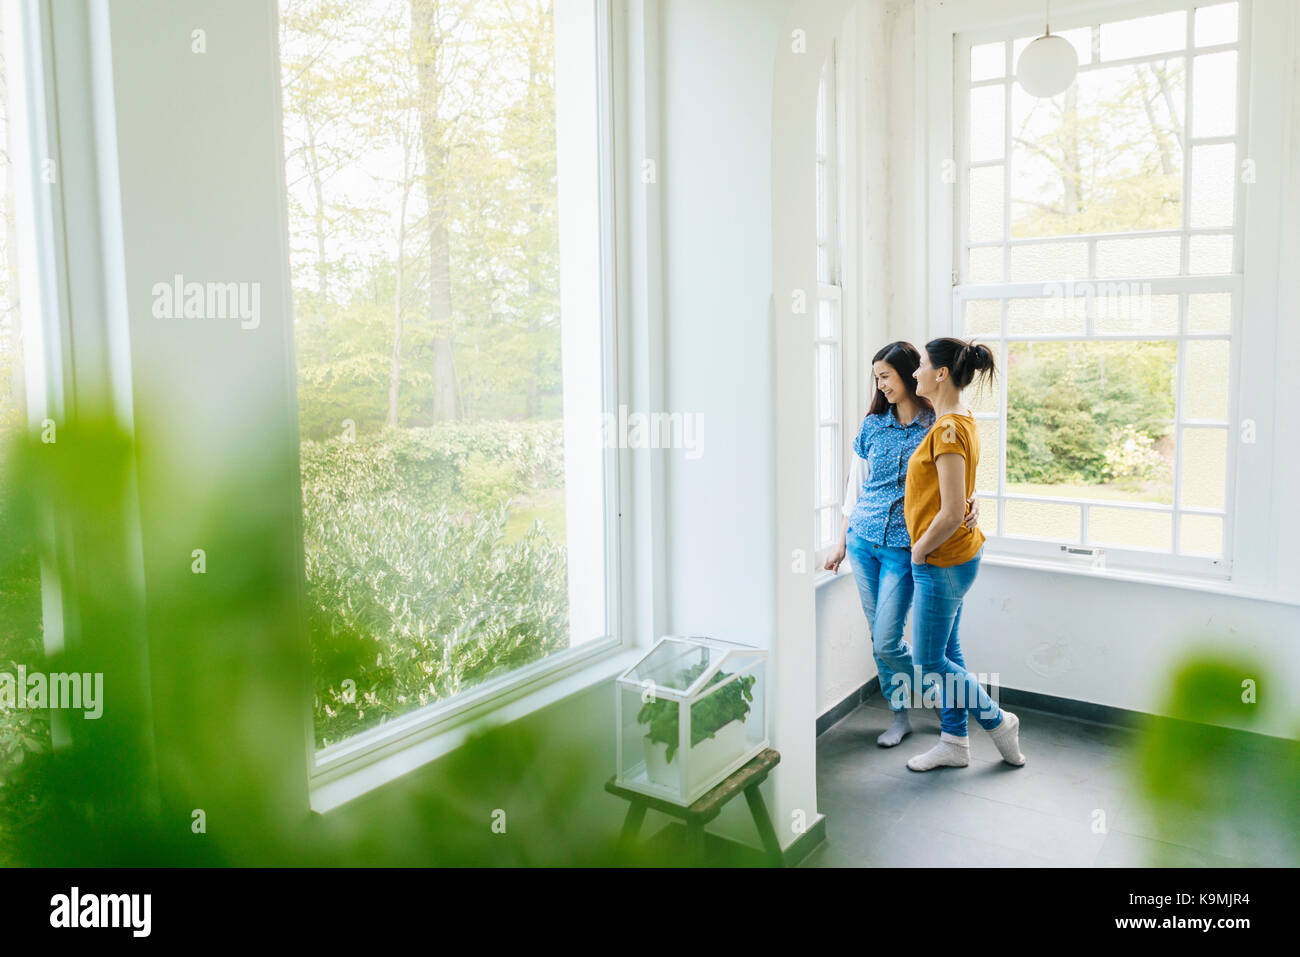 Two women with herbs in glass box at the window - Stock Image